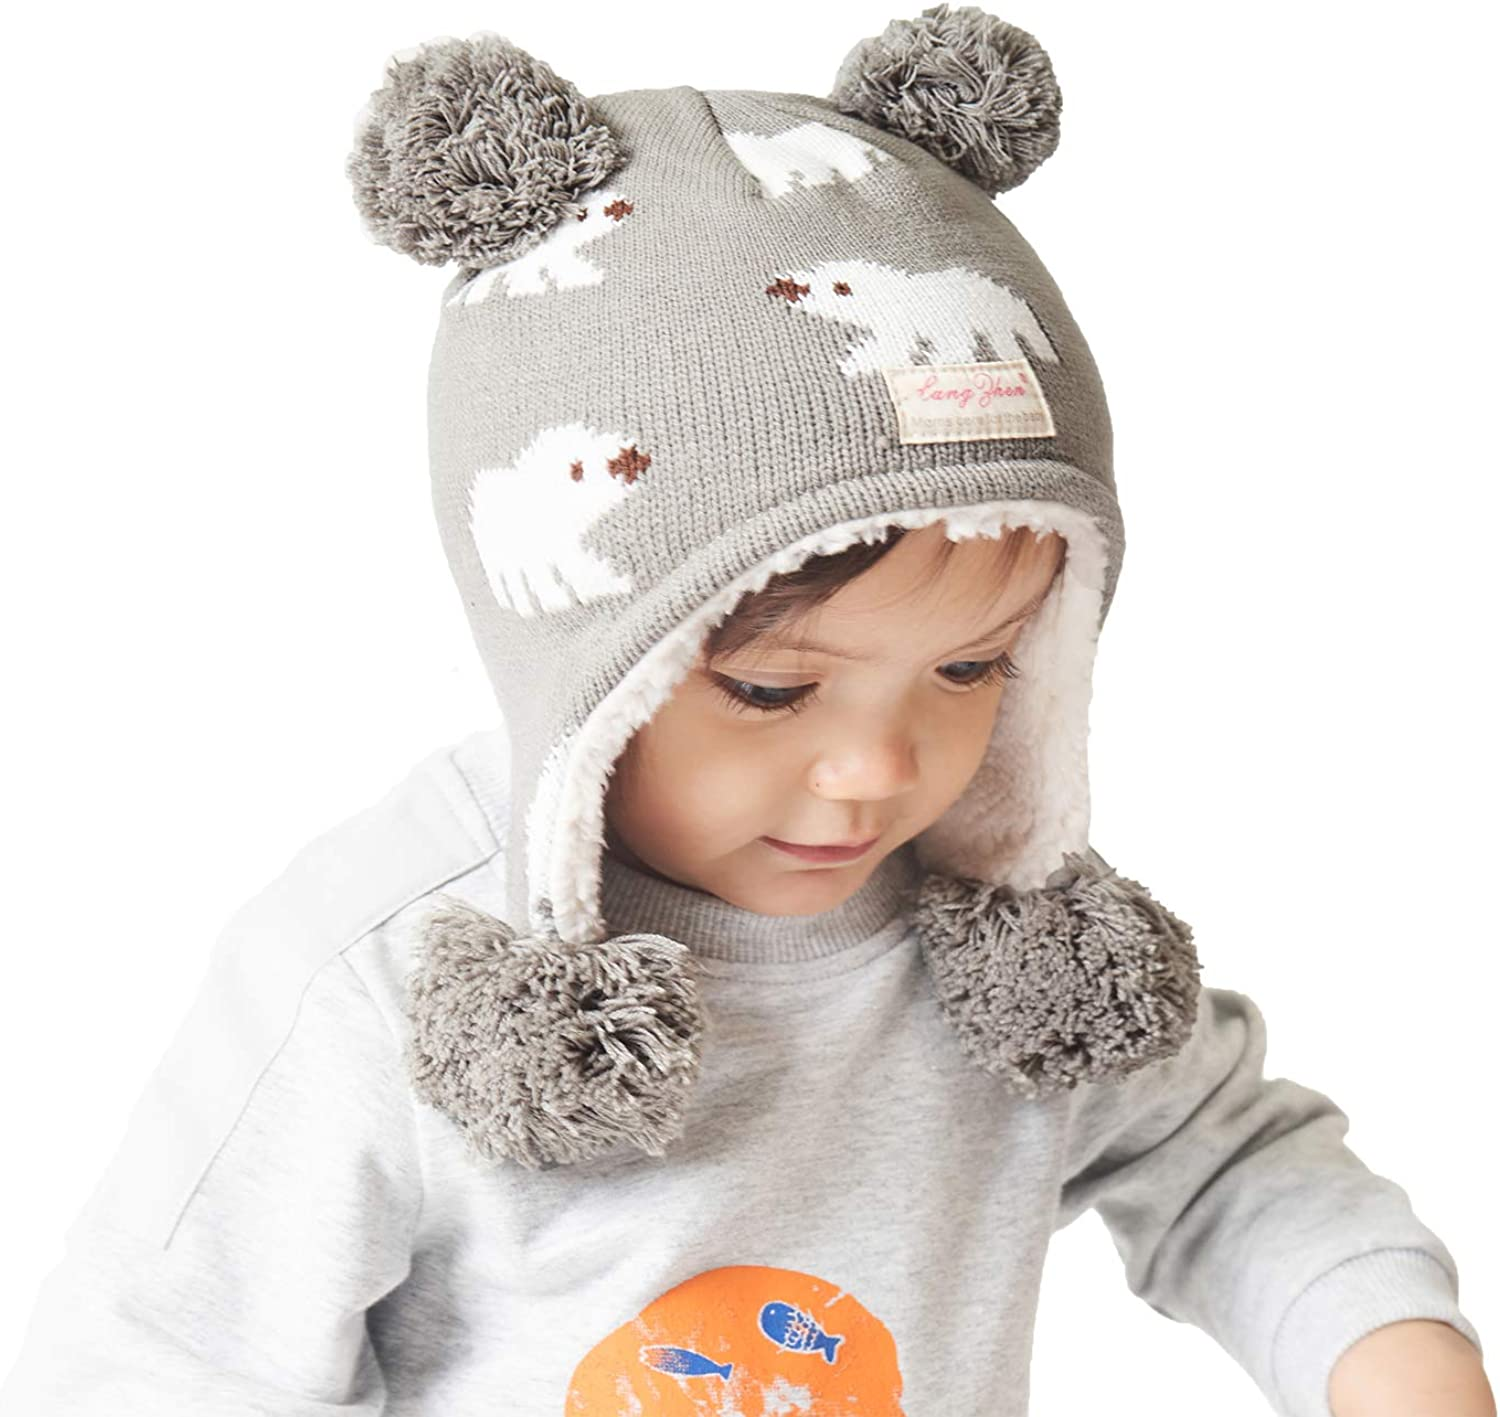 Aigemi Baby Toddler Winter Beanie Hat,Infant Earflap Warm Knit Cap Kids Fleece Lined Hat for Boys and Girls